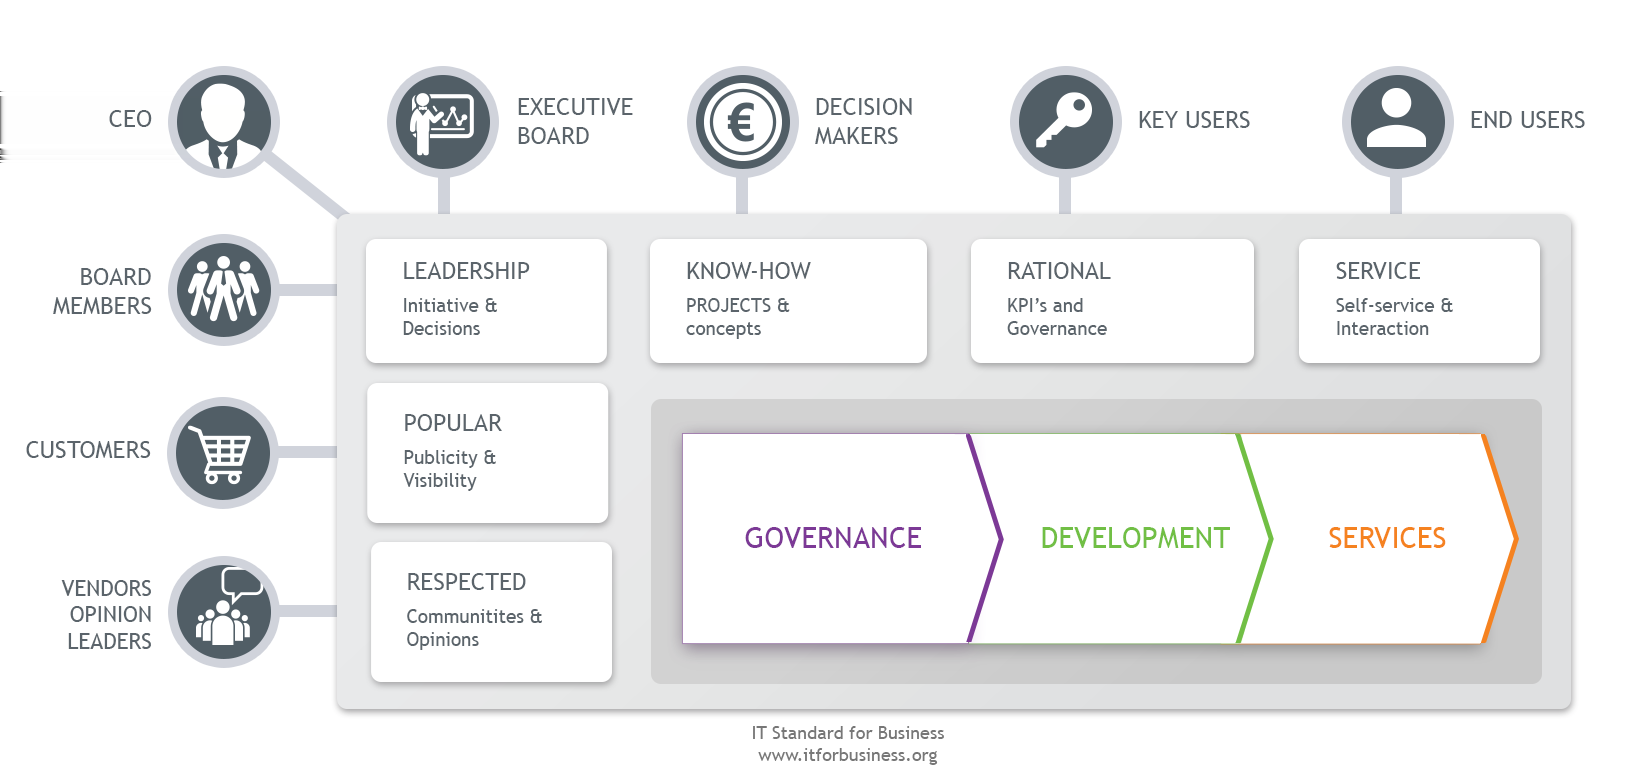 2.1 Enterprise Development Overview Figure 2.1.2 How IT is seen by different stakeholders. IT must enable enterprise development. This requires close and active collaboration with all stakeholders.